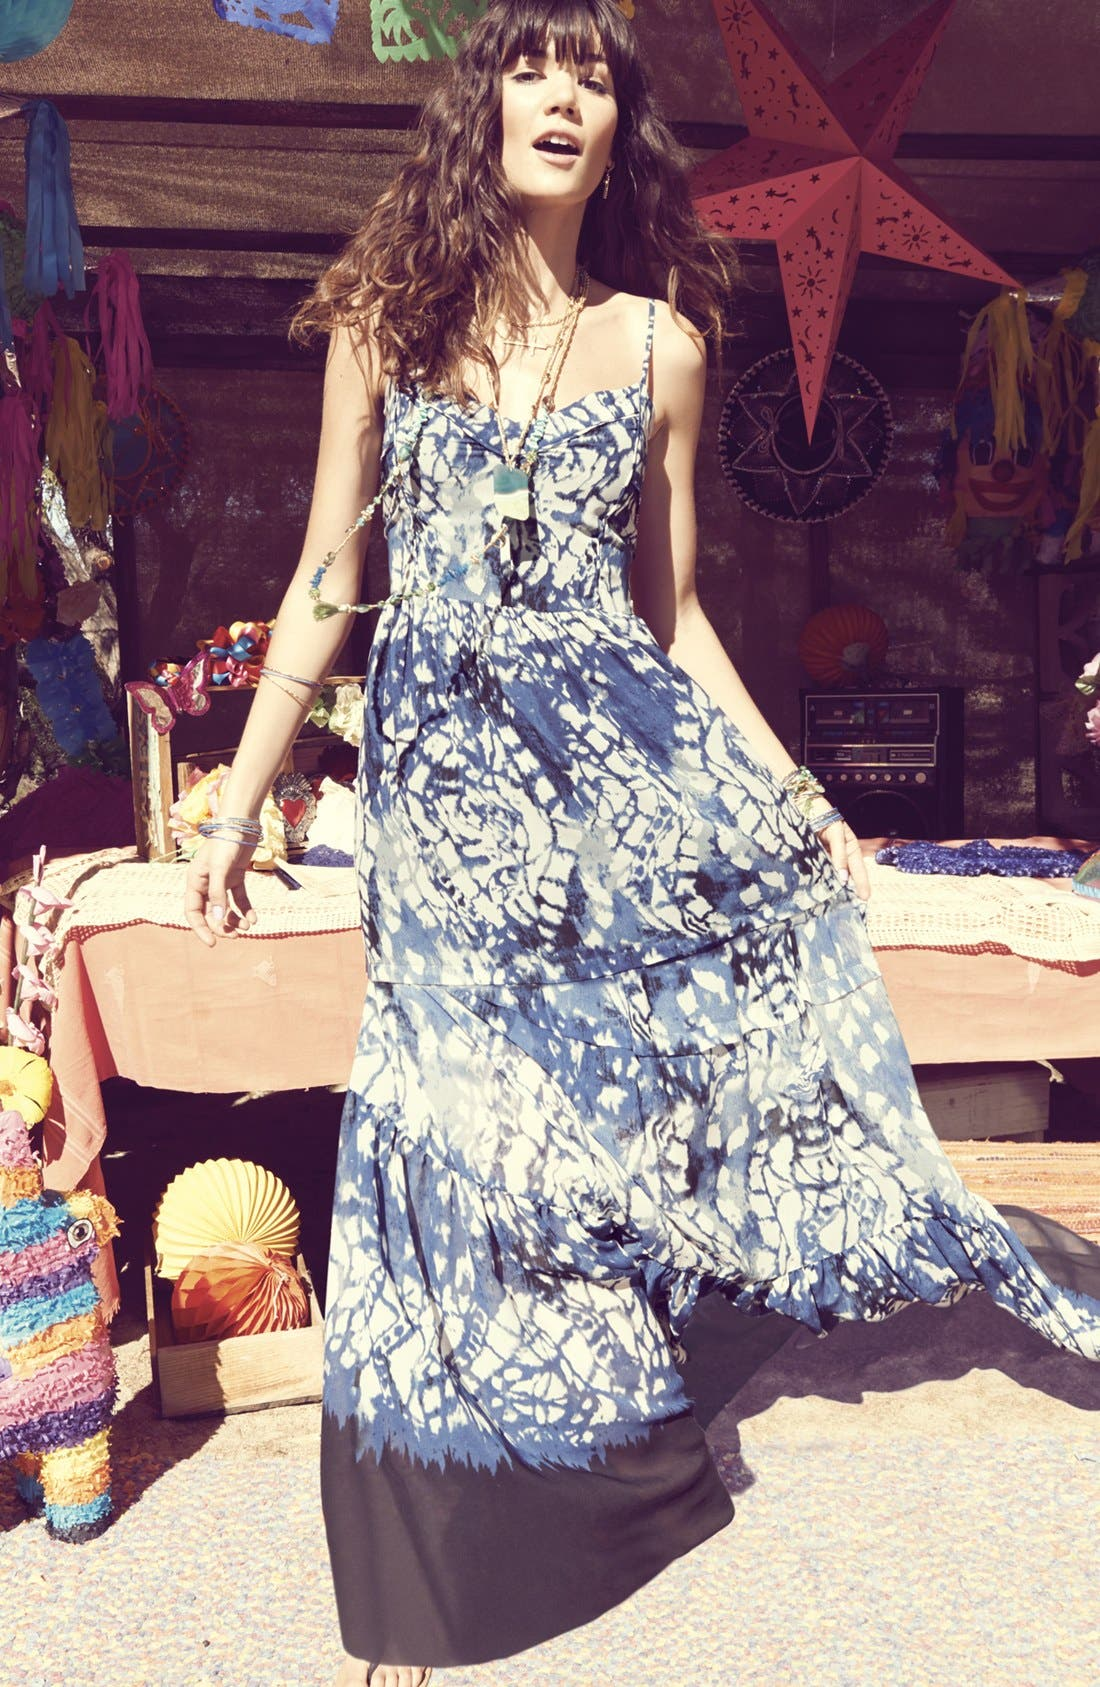 Alternate Image 1 Selected - Betsey Johnson Maxi Dress & Accessories